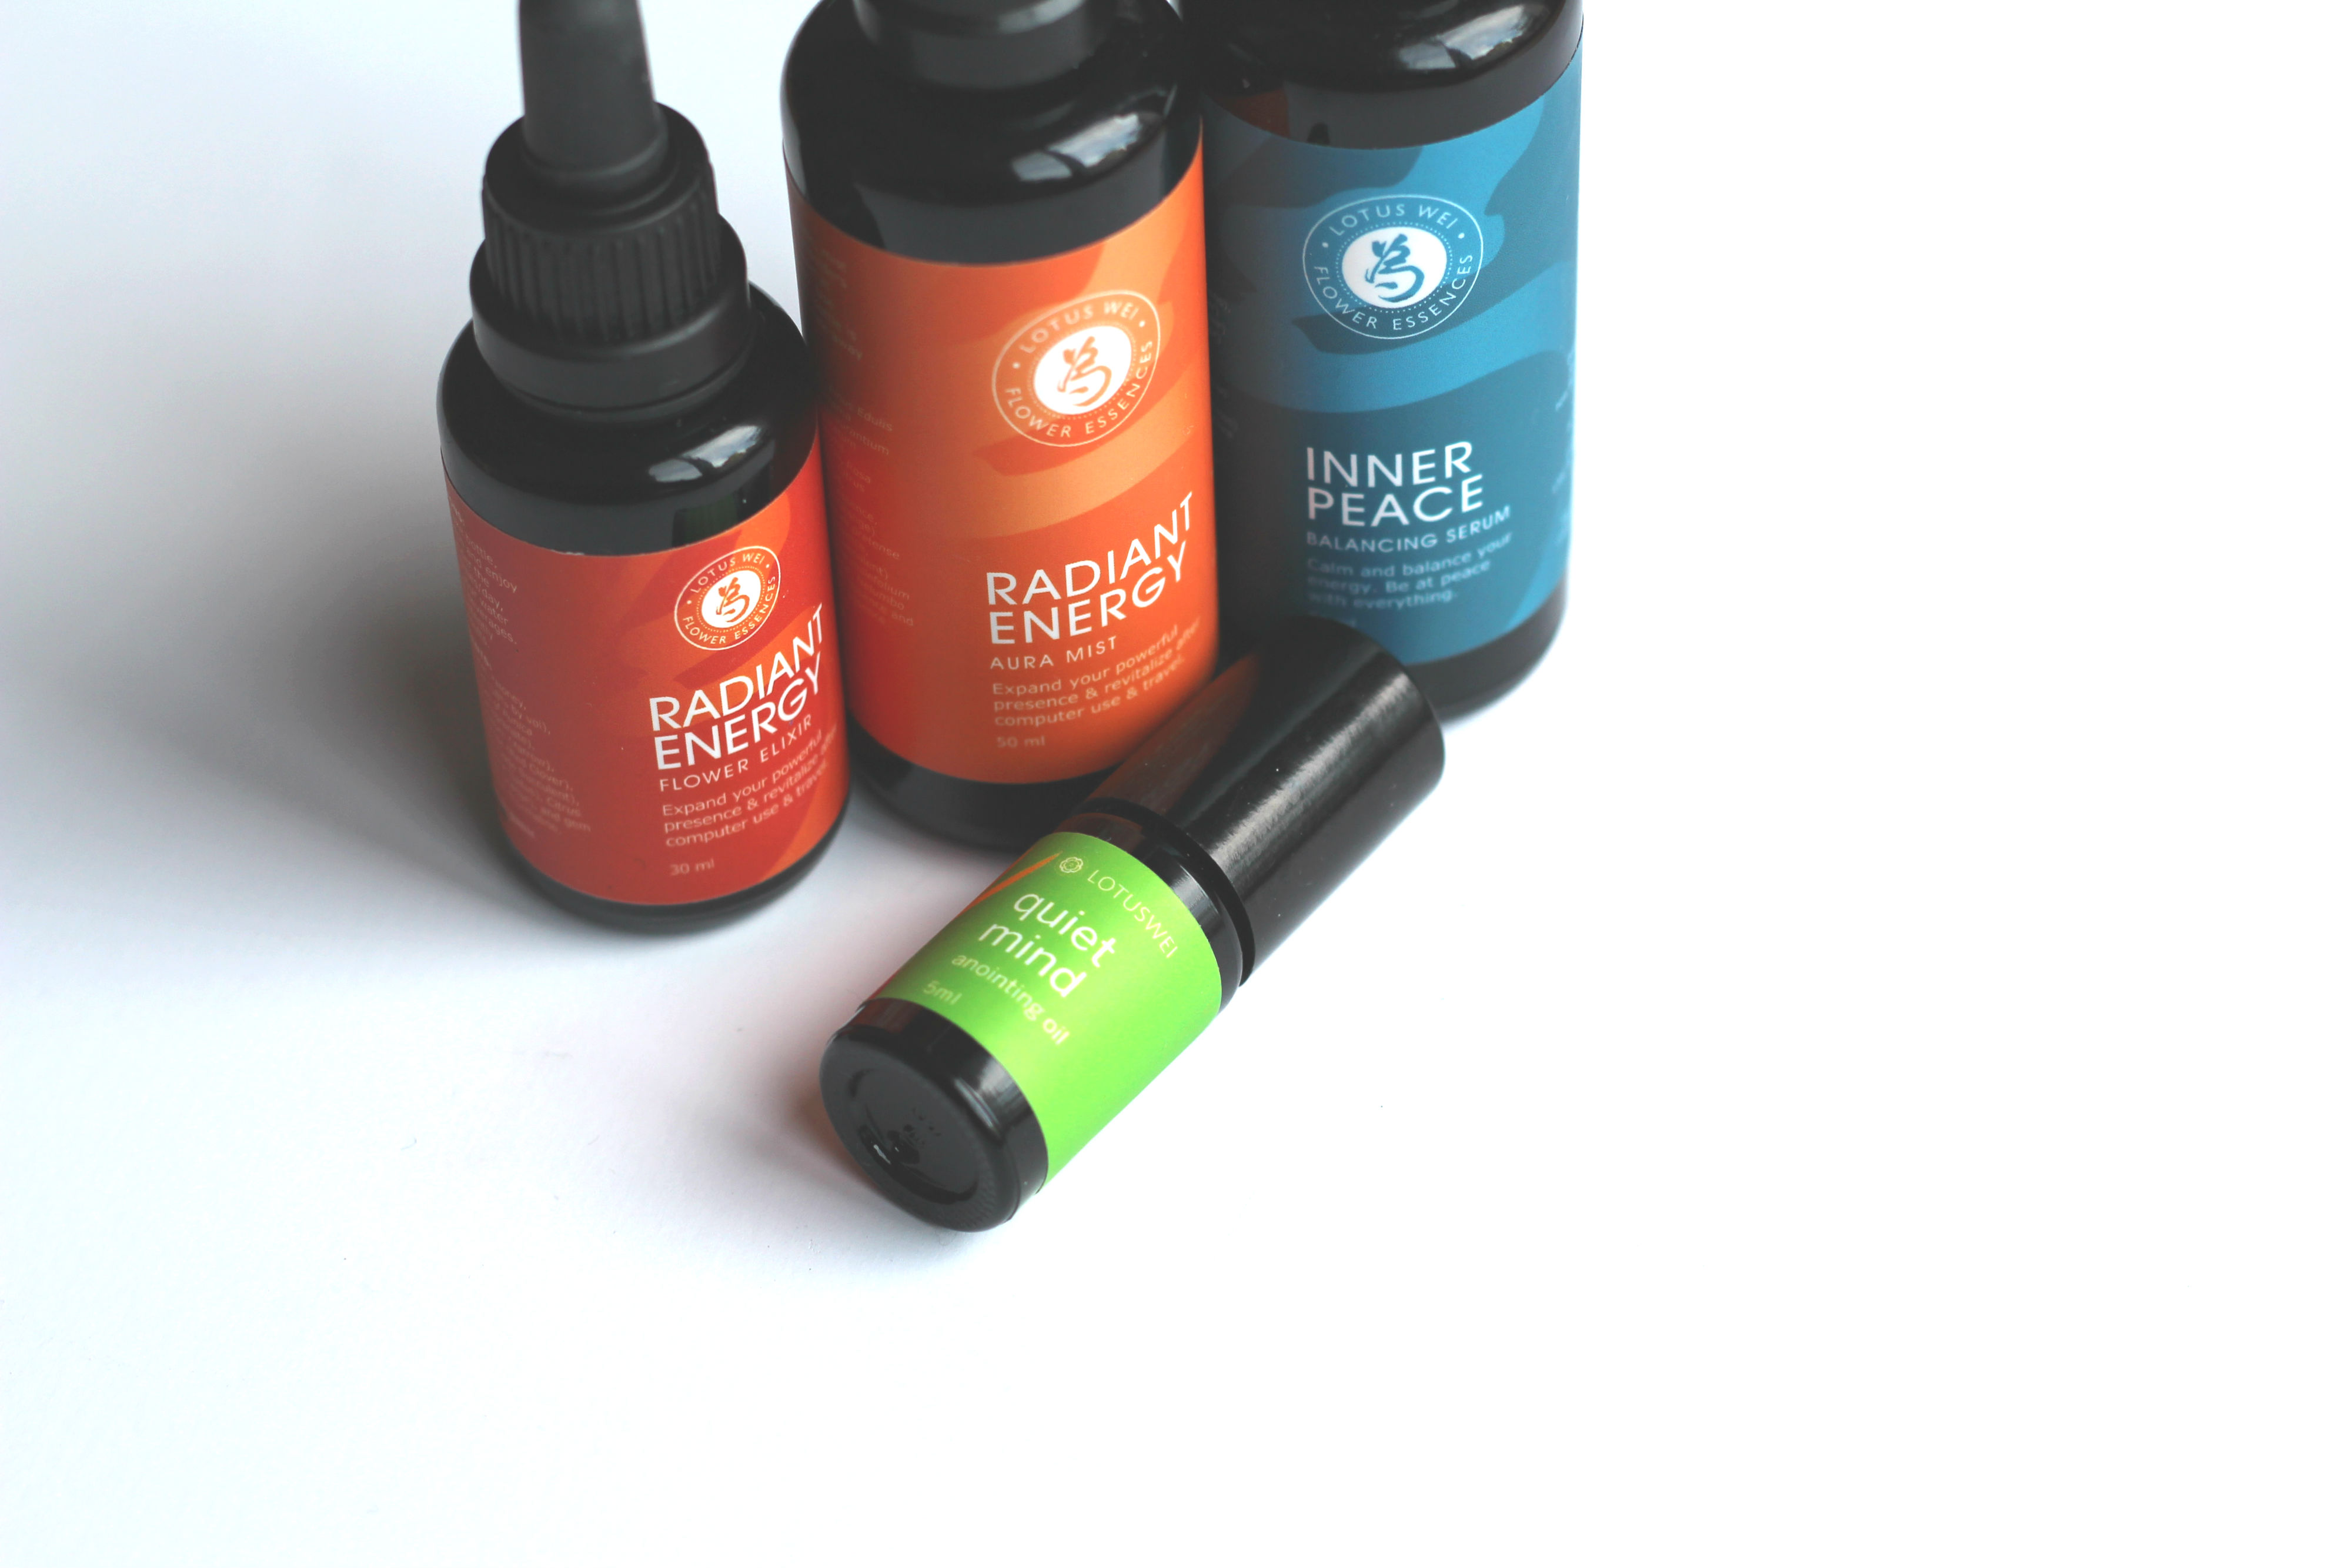 Radiant Energy Flower Elixir, Aura Mist, Inner Peace Balancing Serum, Quiet Mind anointing Oil